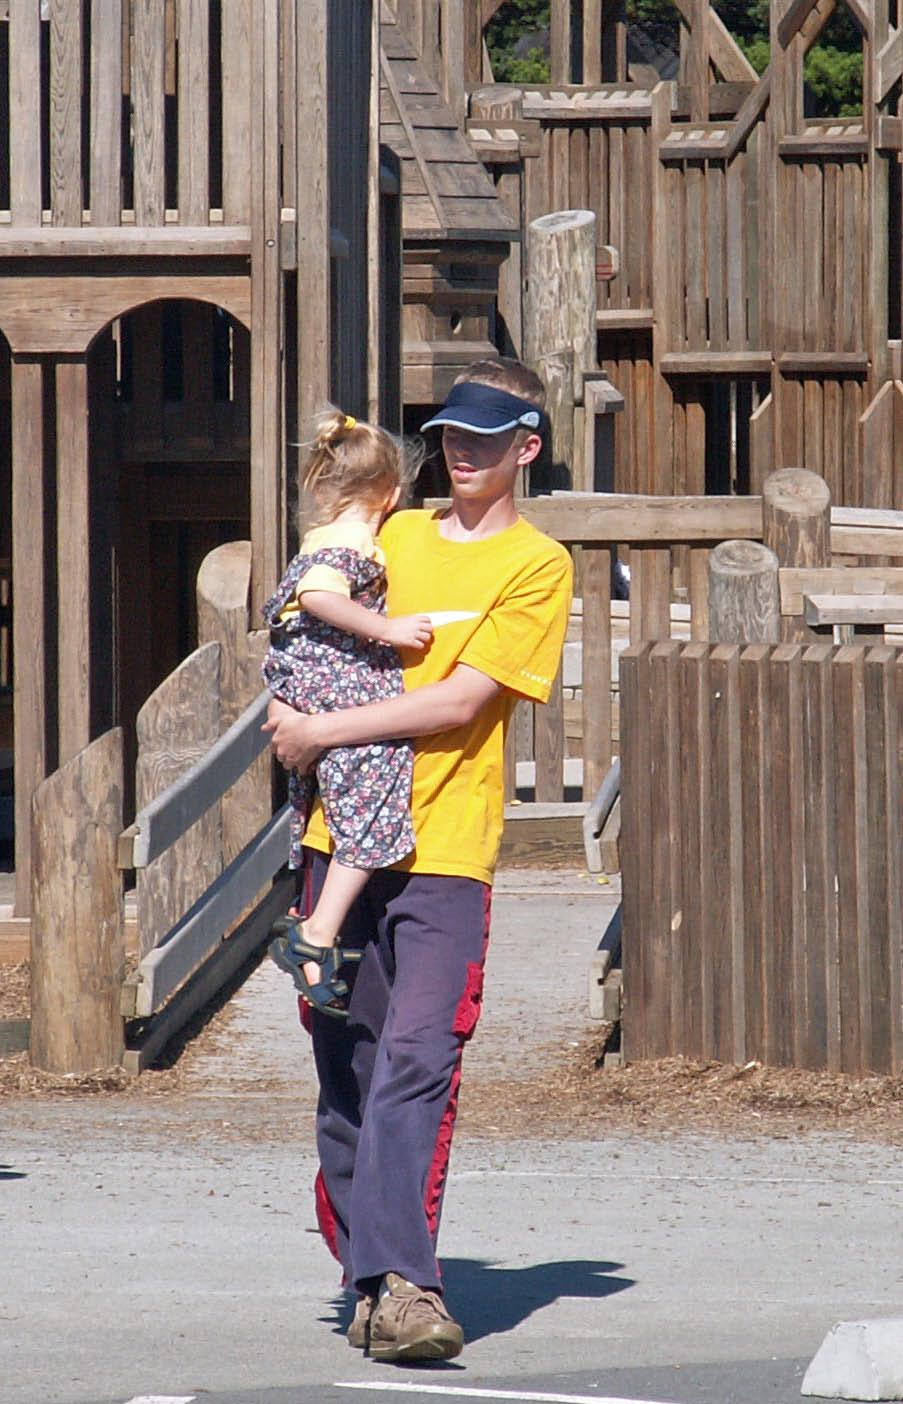 picture of Layne and Mikaela at playground